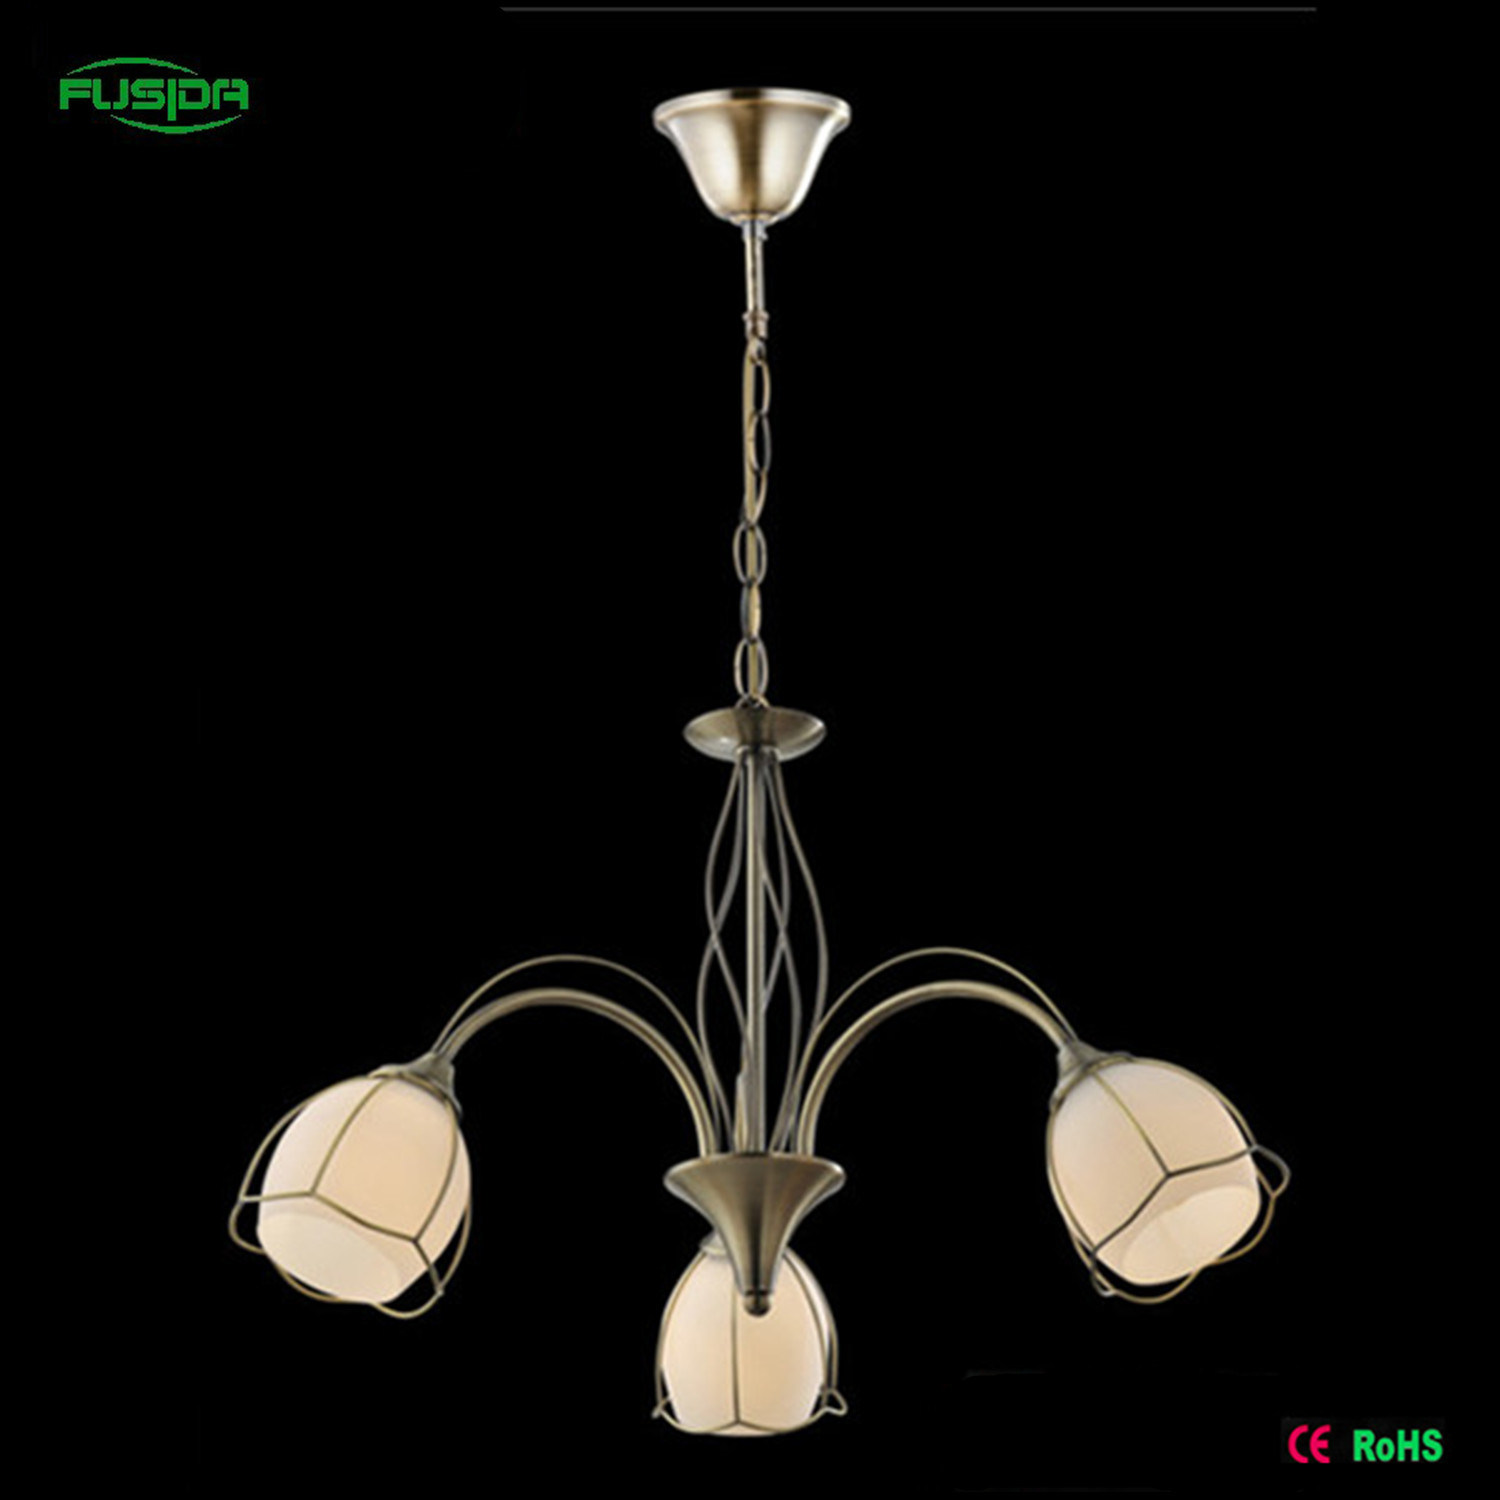 Modern Lighting Quotes Hot Item Modern Chandelier Pendant Lamps Lighting For Christmas